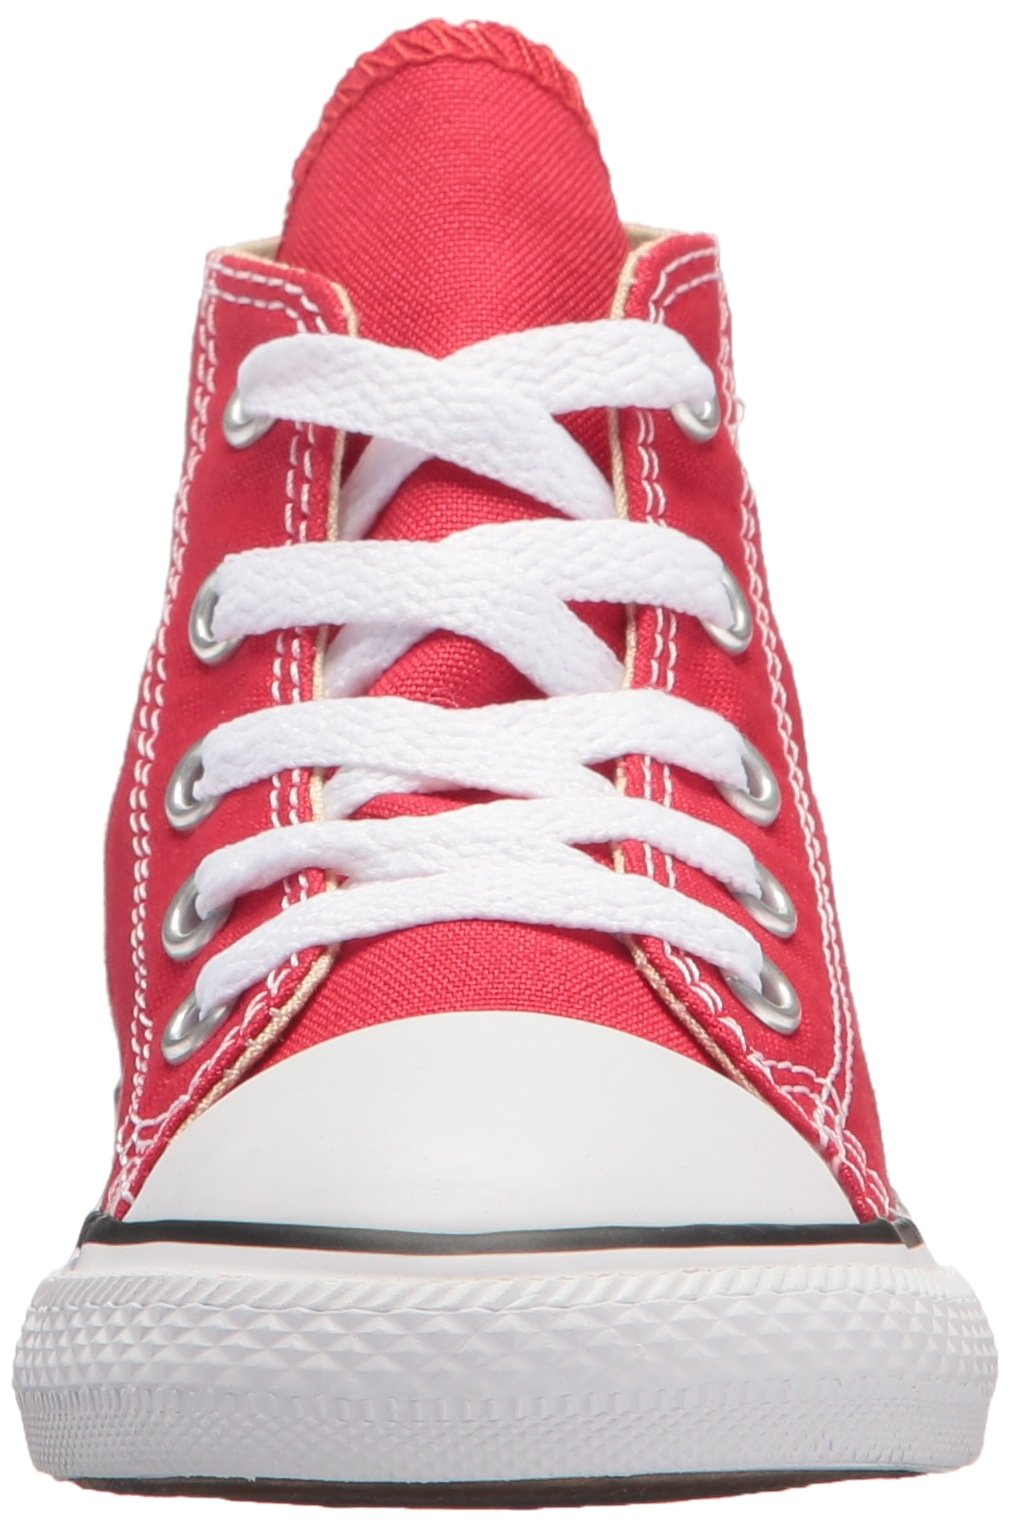 Converse Kids Chuck Taylor Classic Hi Red Sneaker - 10.5 by Converse (Image #4)